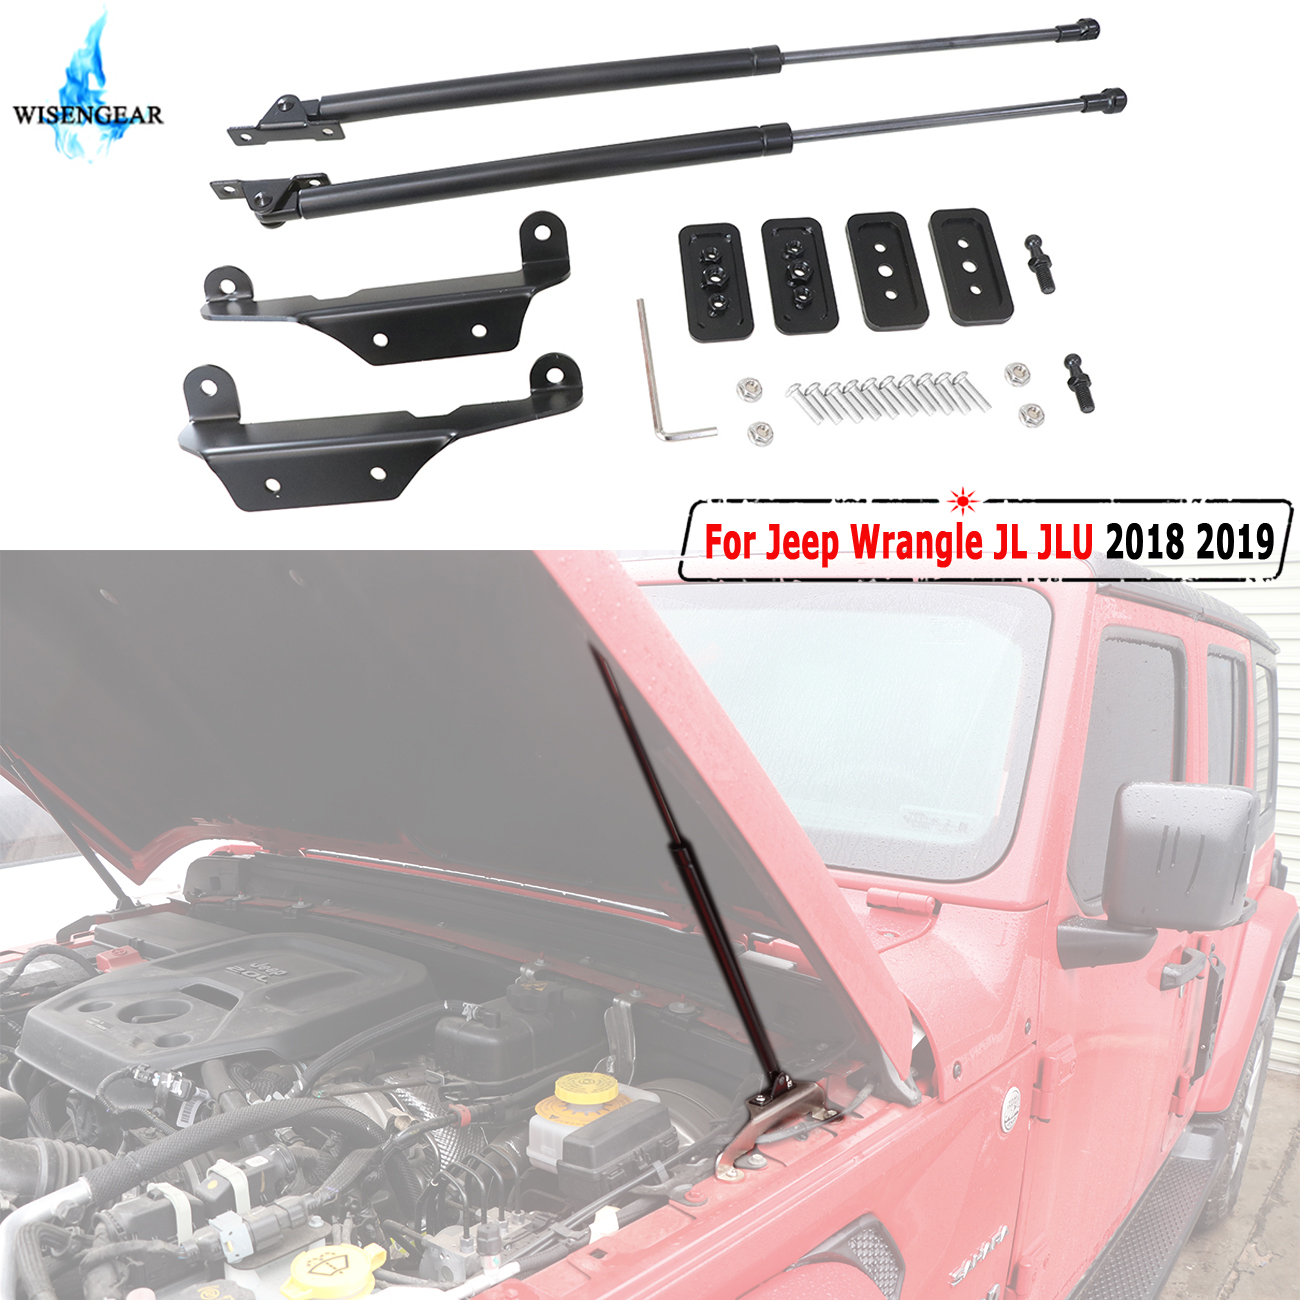 WISENGREAR Front Lift Supports Struts Shocks For Jeep Wrangle JL JLU 2018 2019 Hood Gas Support